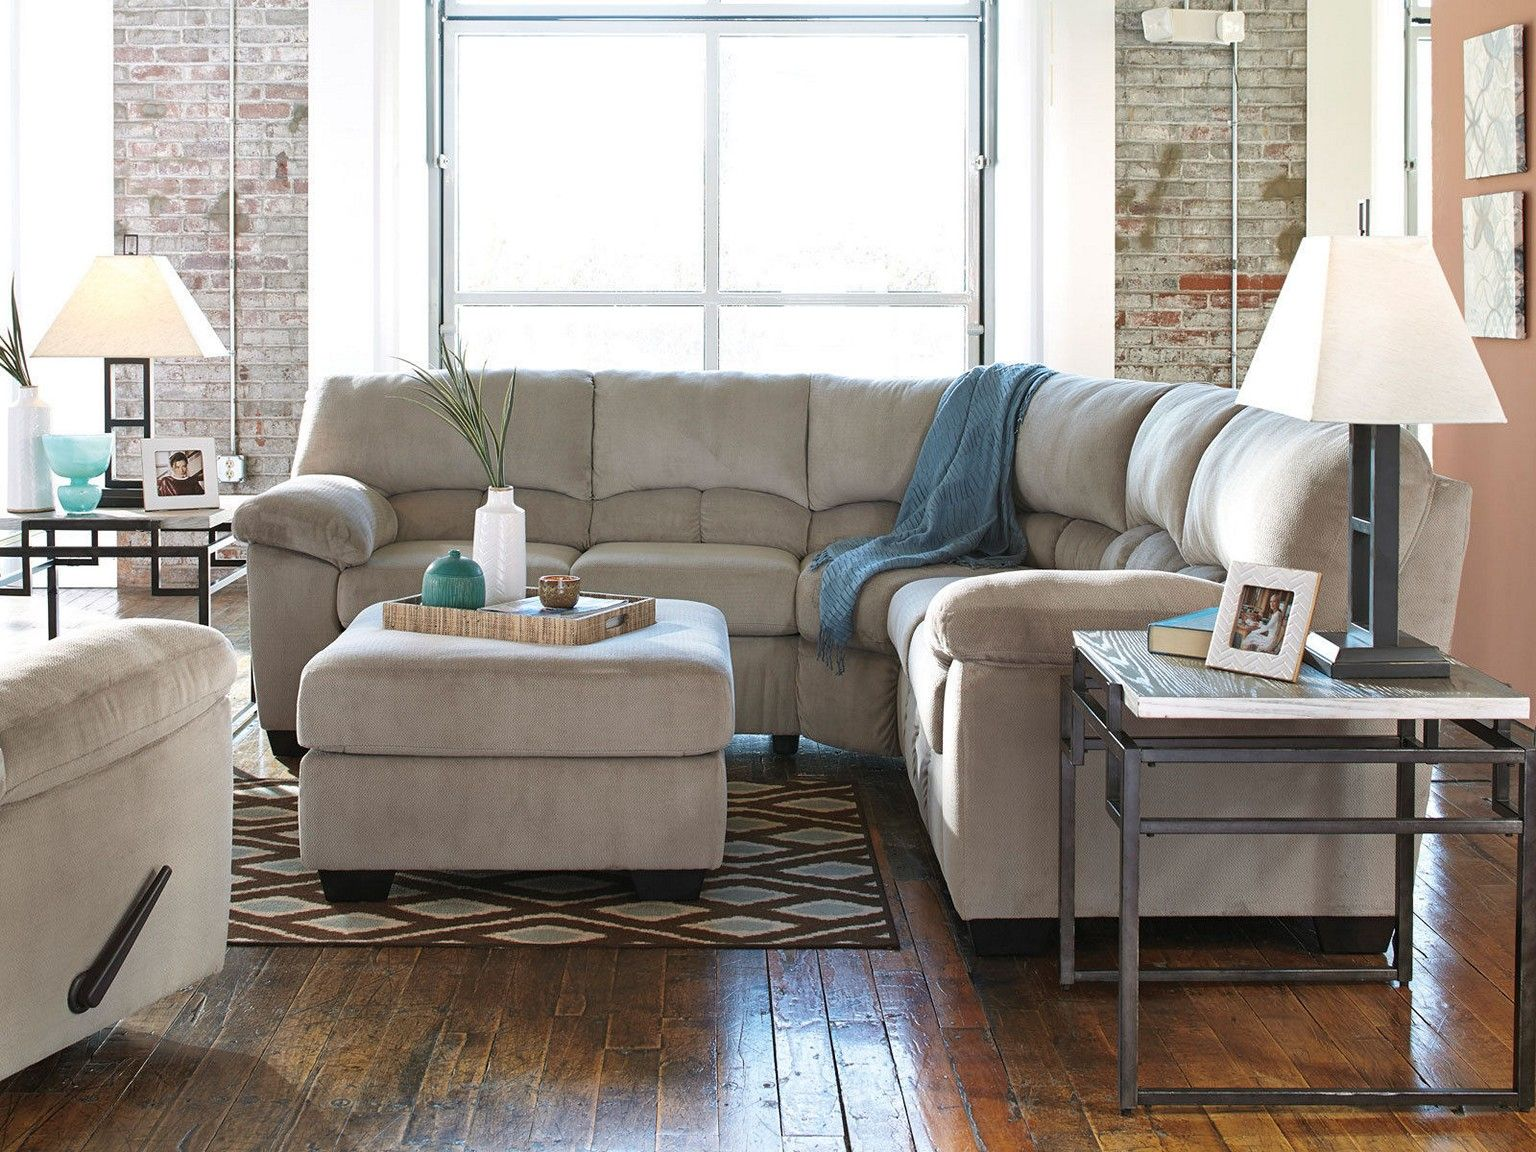 Cozy Living Room Ideas For Apartments Designs  Lake House Simple Living Room Sectional Design Ideas 2018